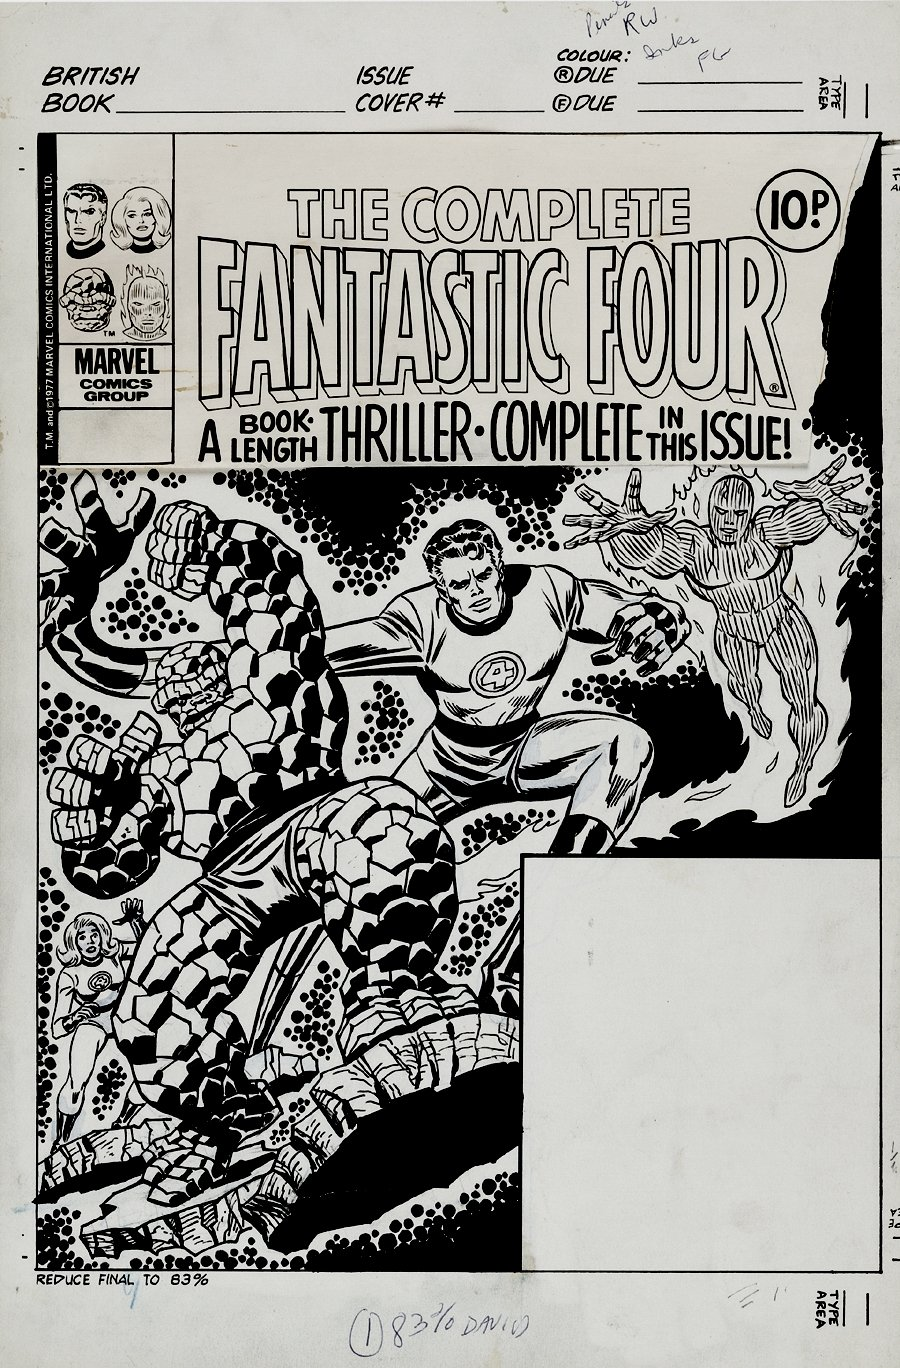 Complete Fantastic Four #2 Cover (1977)